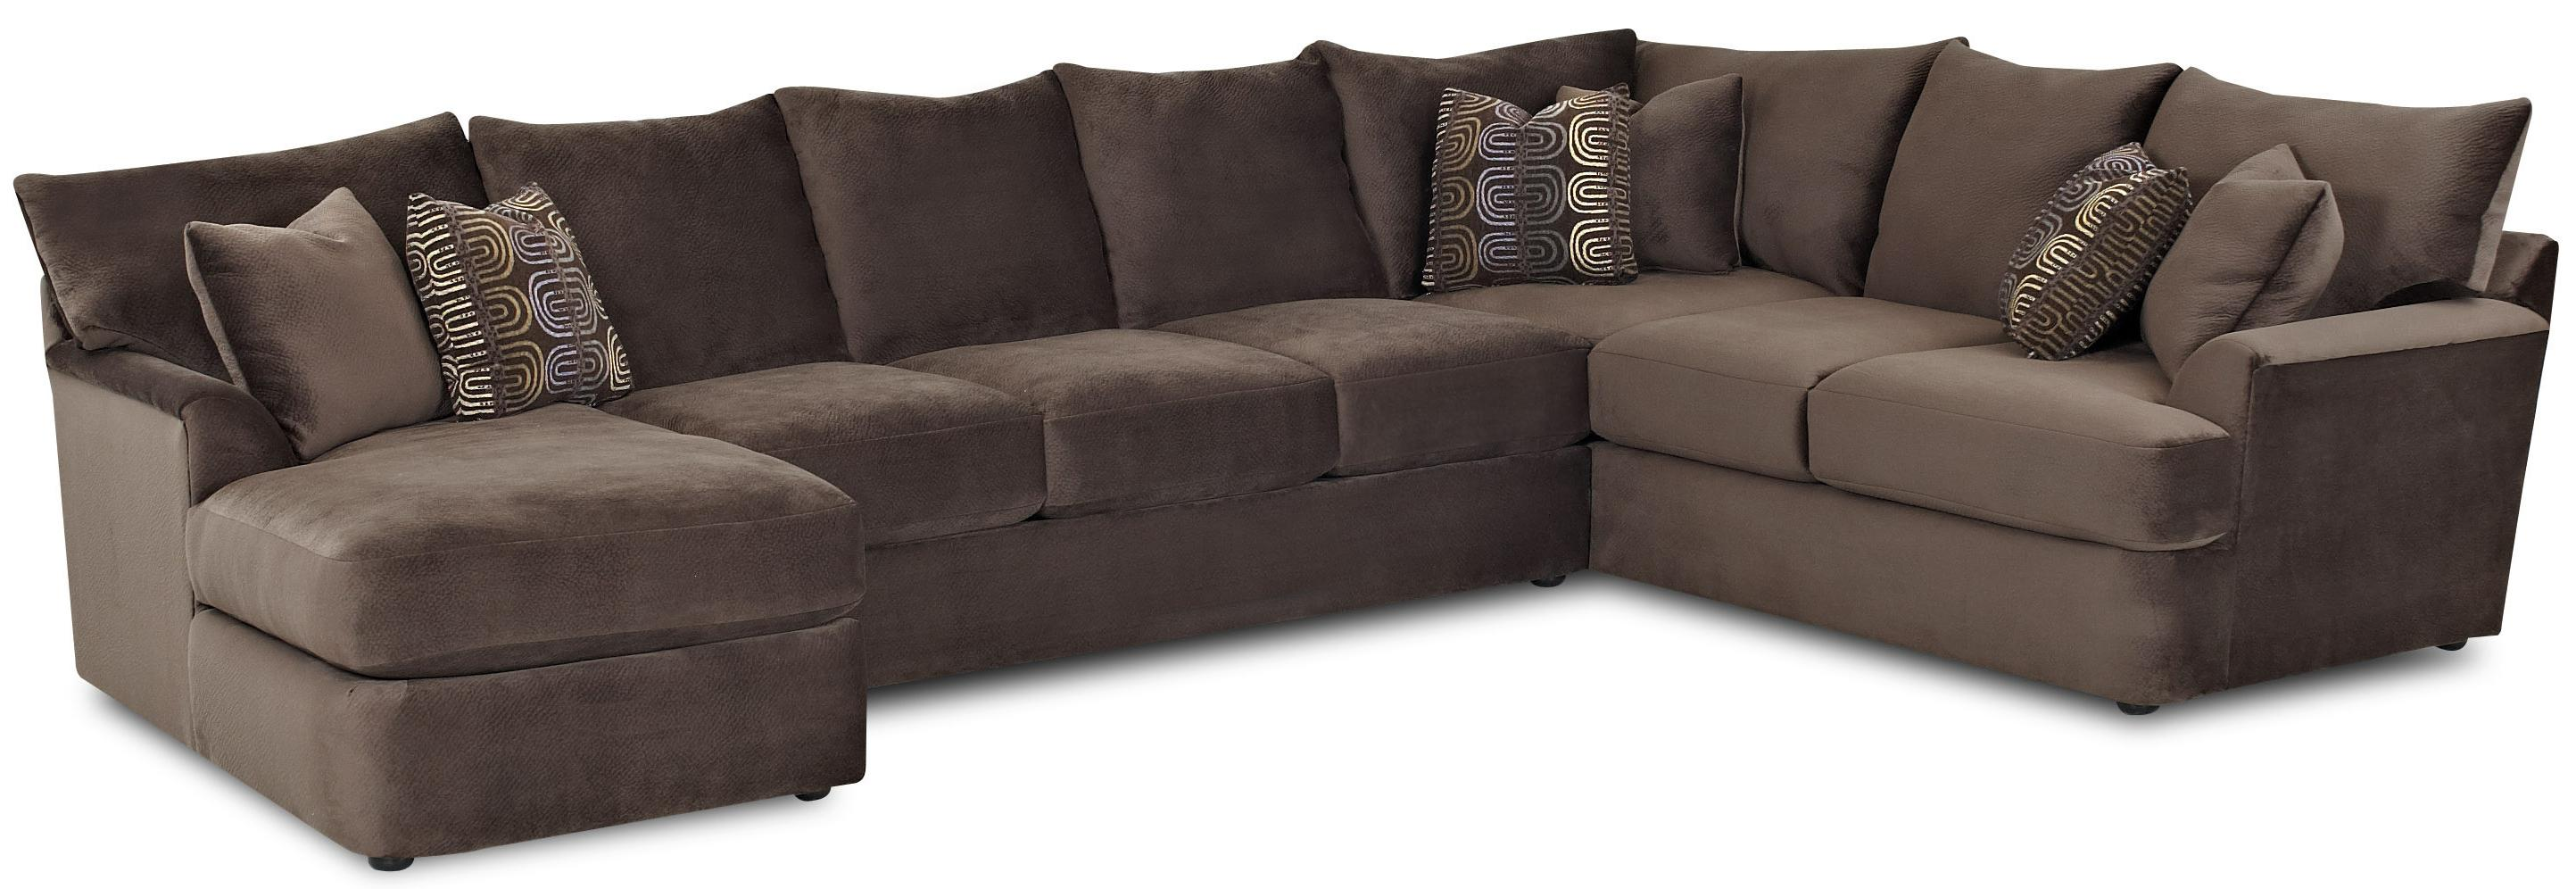 L-Shaped Sectional Sofa with Left Chaise  sc 1 st  Wolf Furniture : sectional sofa left chaise - Sectionals, Sofas & Couches